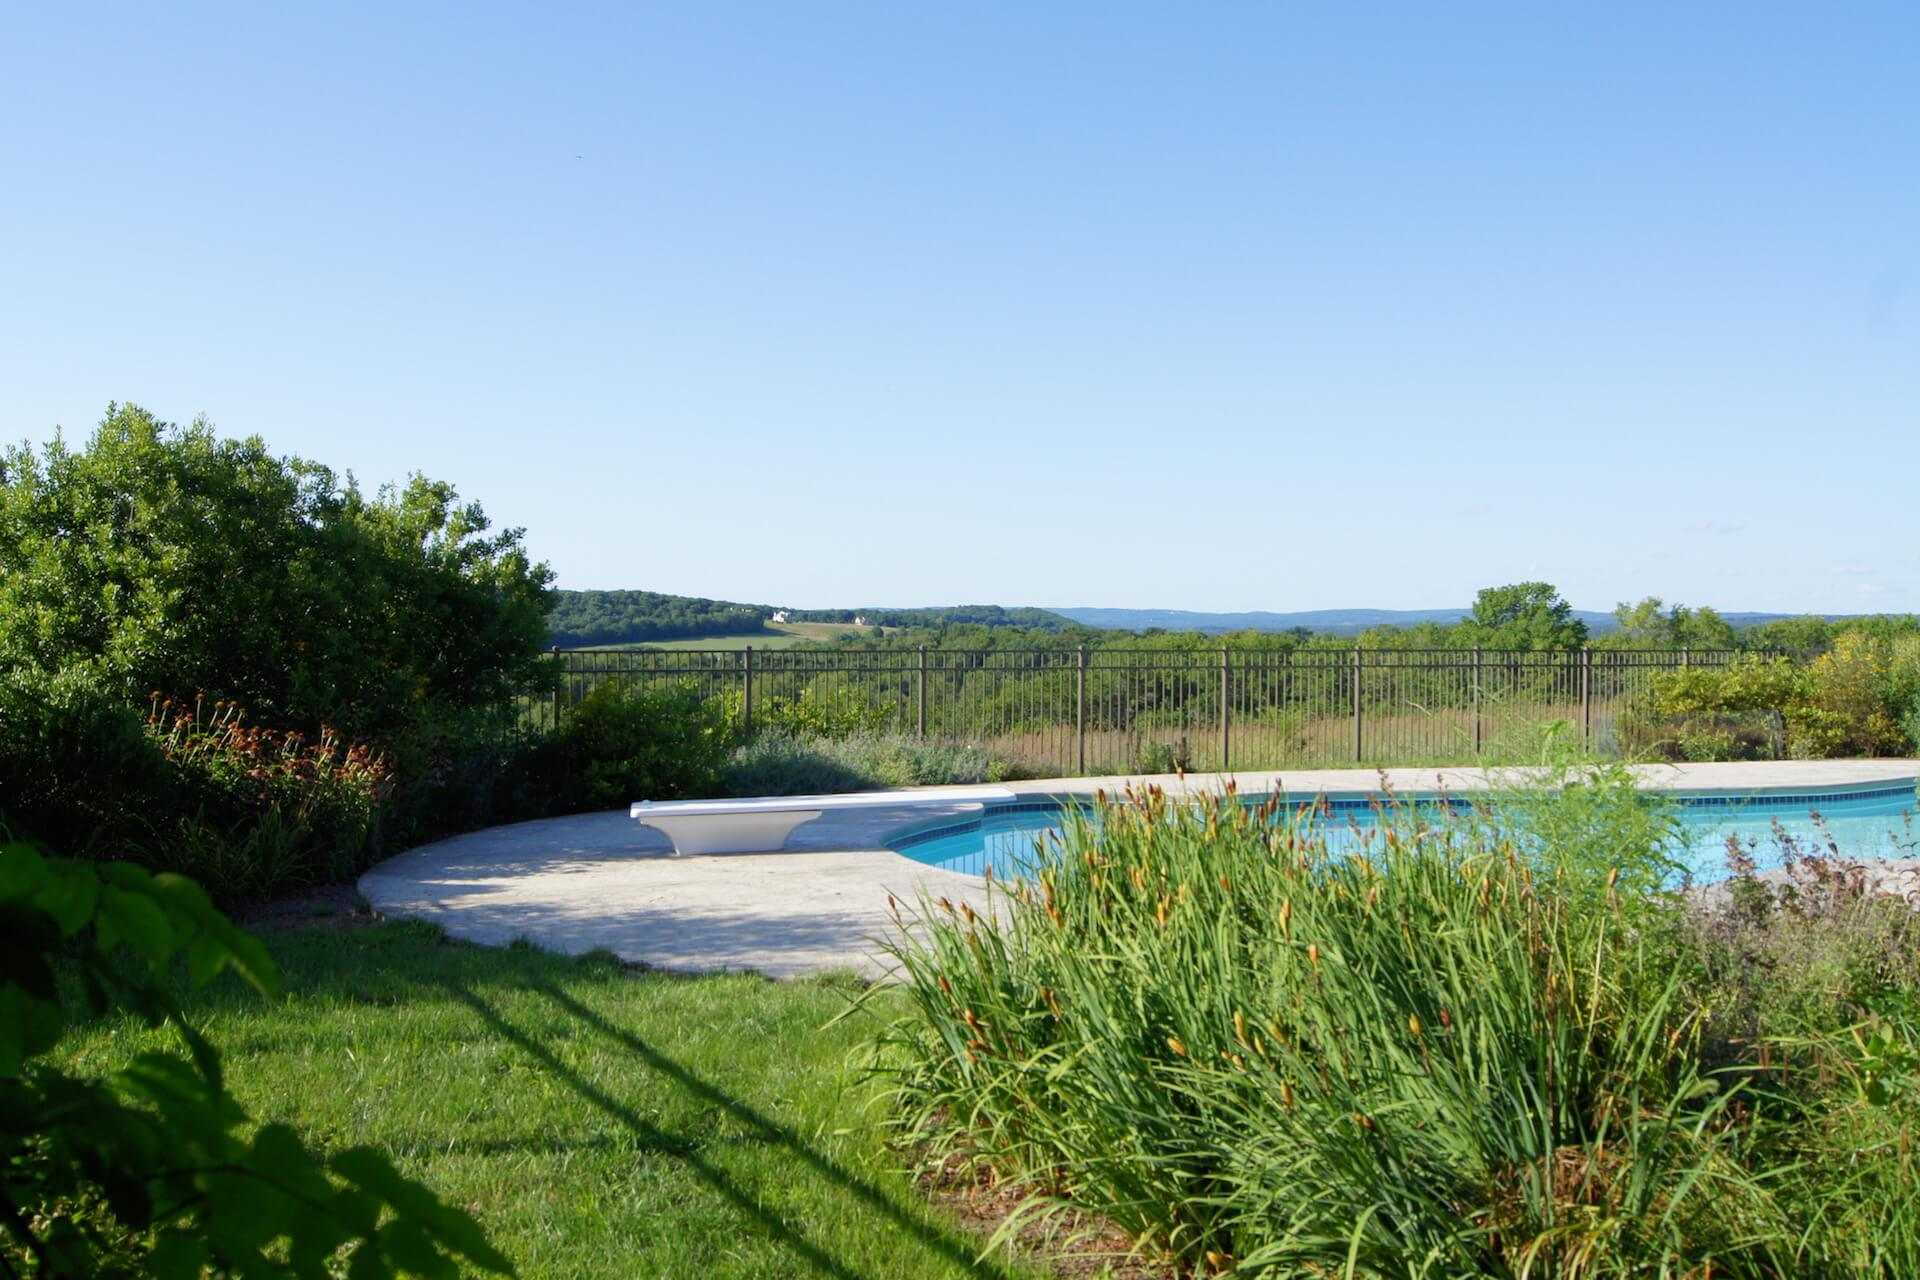 facing the meadow past the pool and landscape